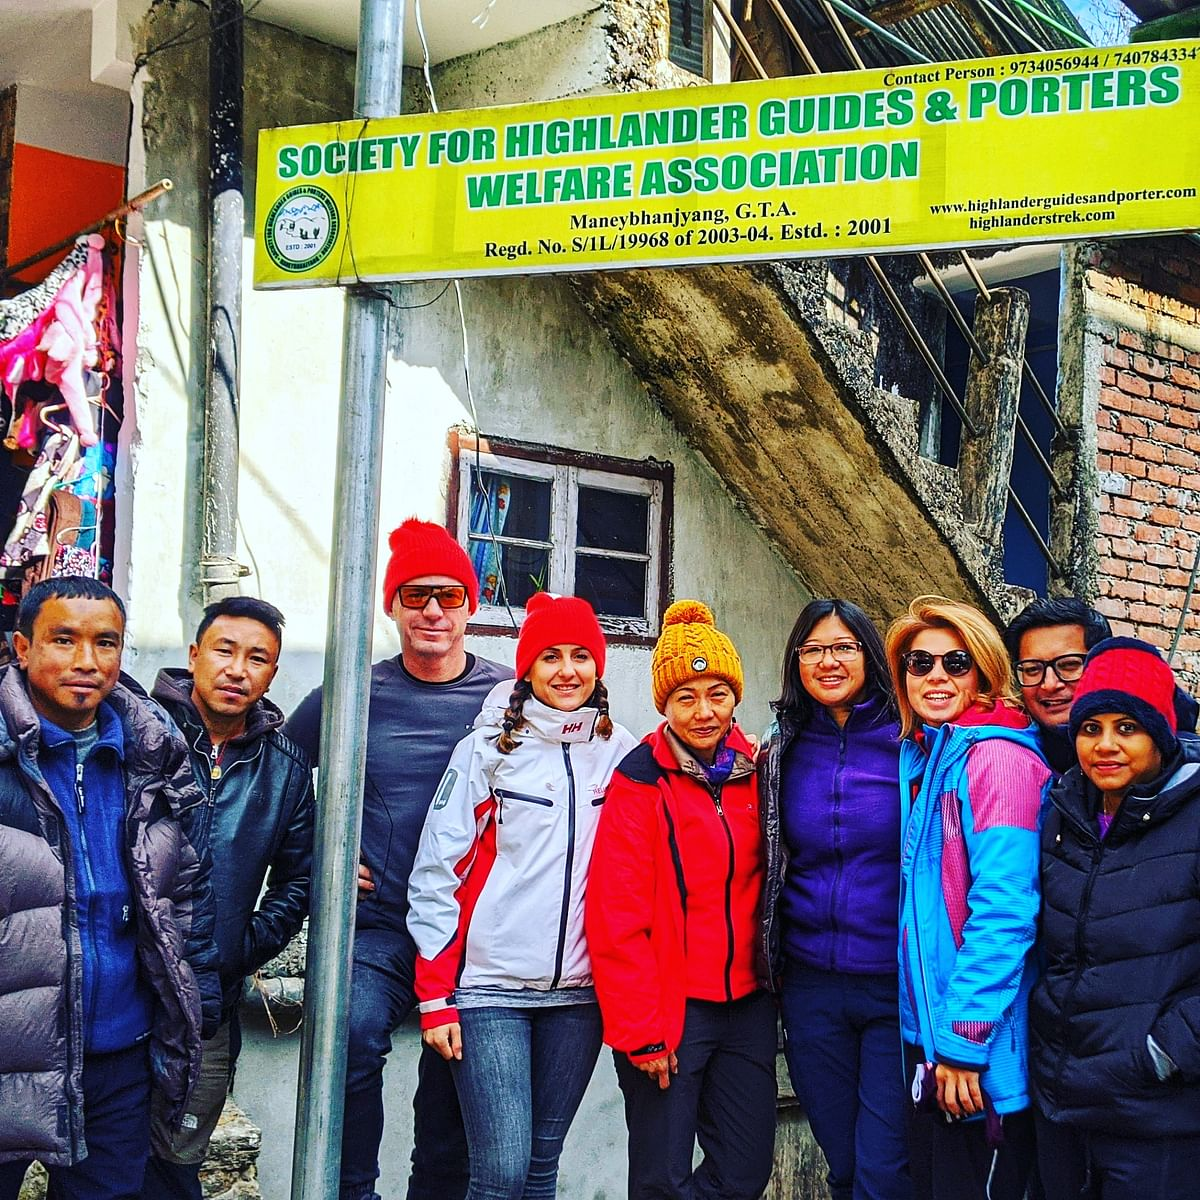 (Left to right) Trekkers and their guides at Manebhanjyang, Indo Nepal border and the gateway to Singalila Range: Guides Uttam and Dhiren, trekkers  Lassi, Diana from Hungary, Omita from Kalimpong, trek organiser Sujata Mukhia of Relimai from Kalimpong, Julija from Lithuania, Rajeev Chettri (the author, from Sikkim) and Priya from Mumbai